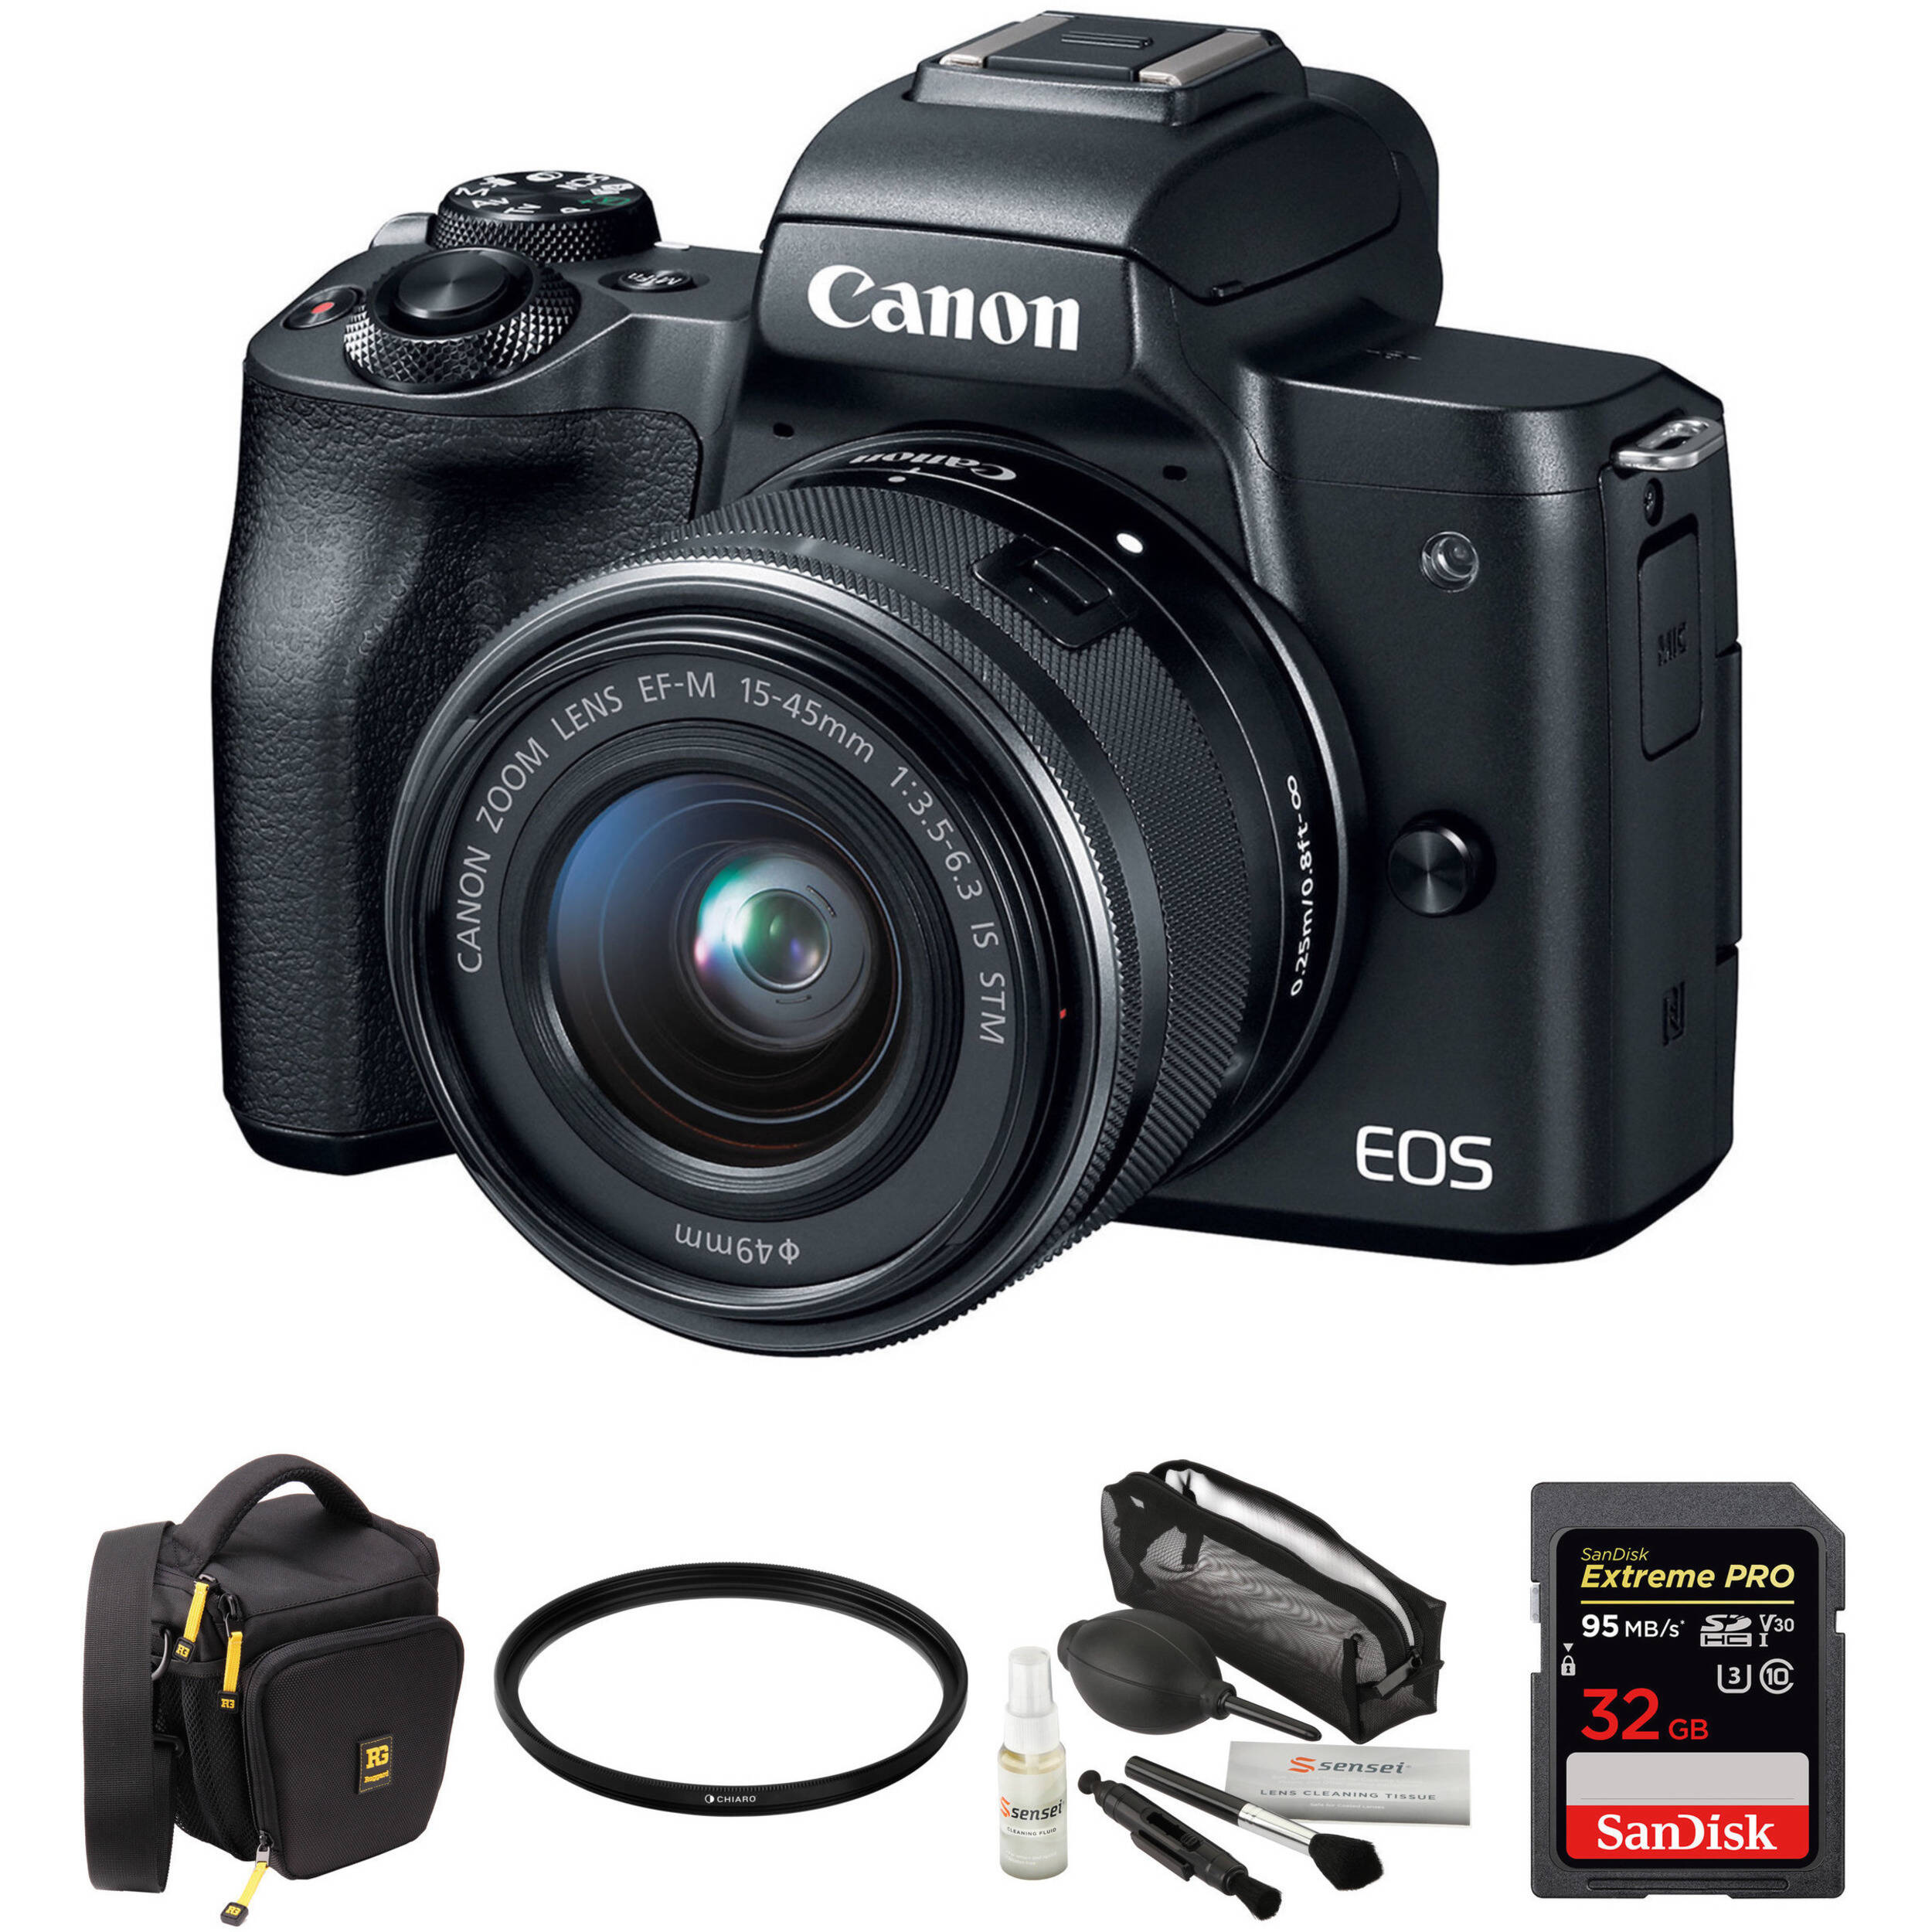 canon eos m50 mirrorless digital camera with 15 45mm lens and